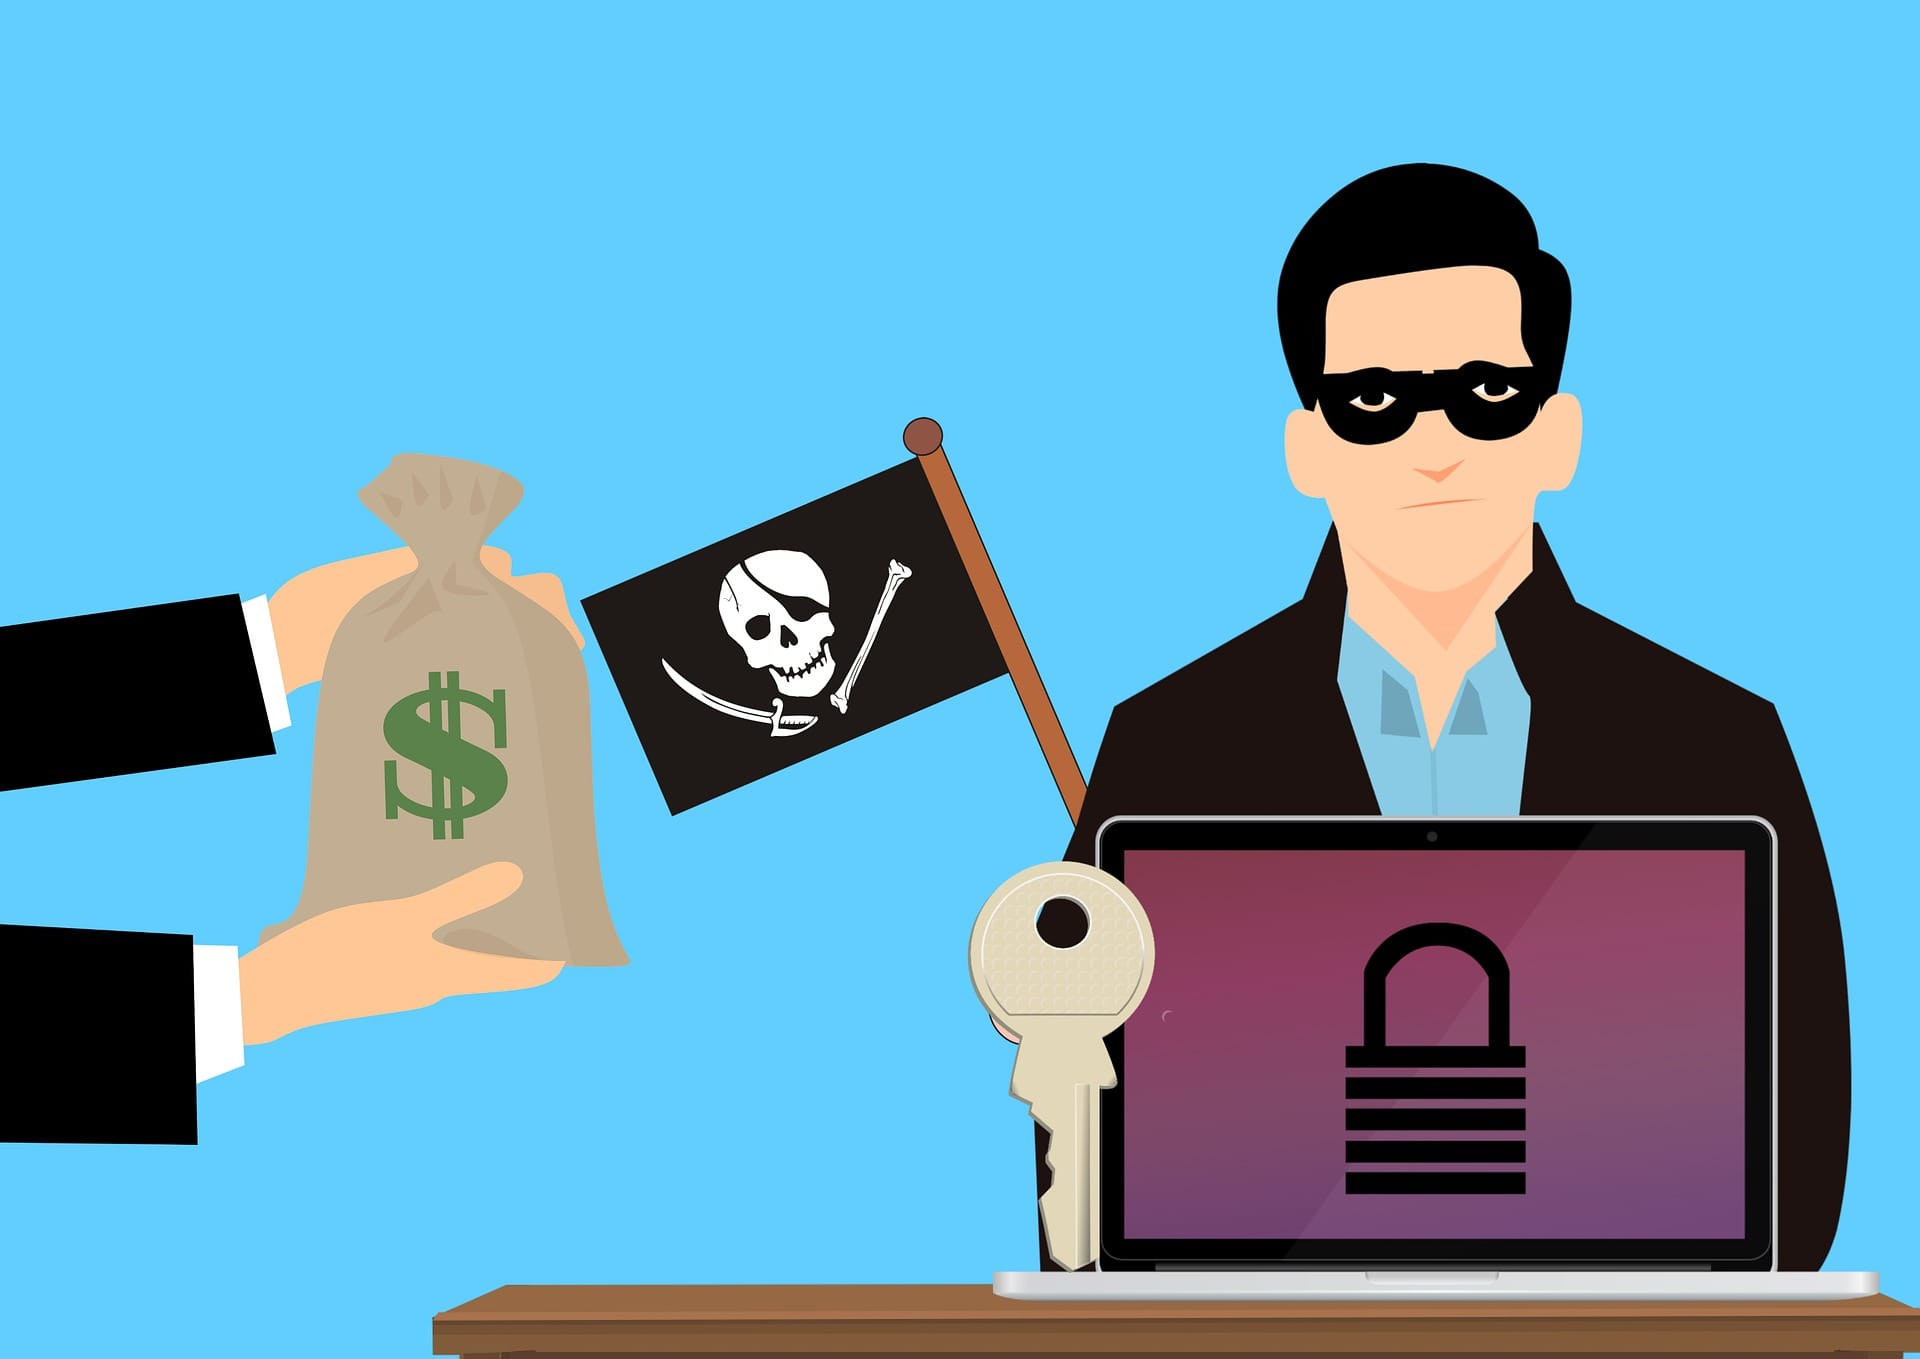 Ransomware attacks spike by 140%, 57% of organizations agree to pay